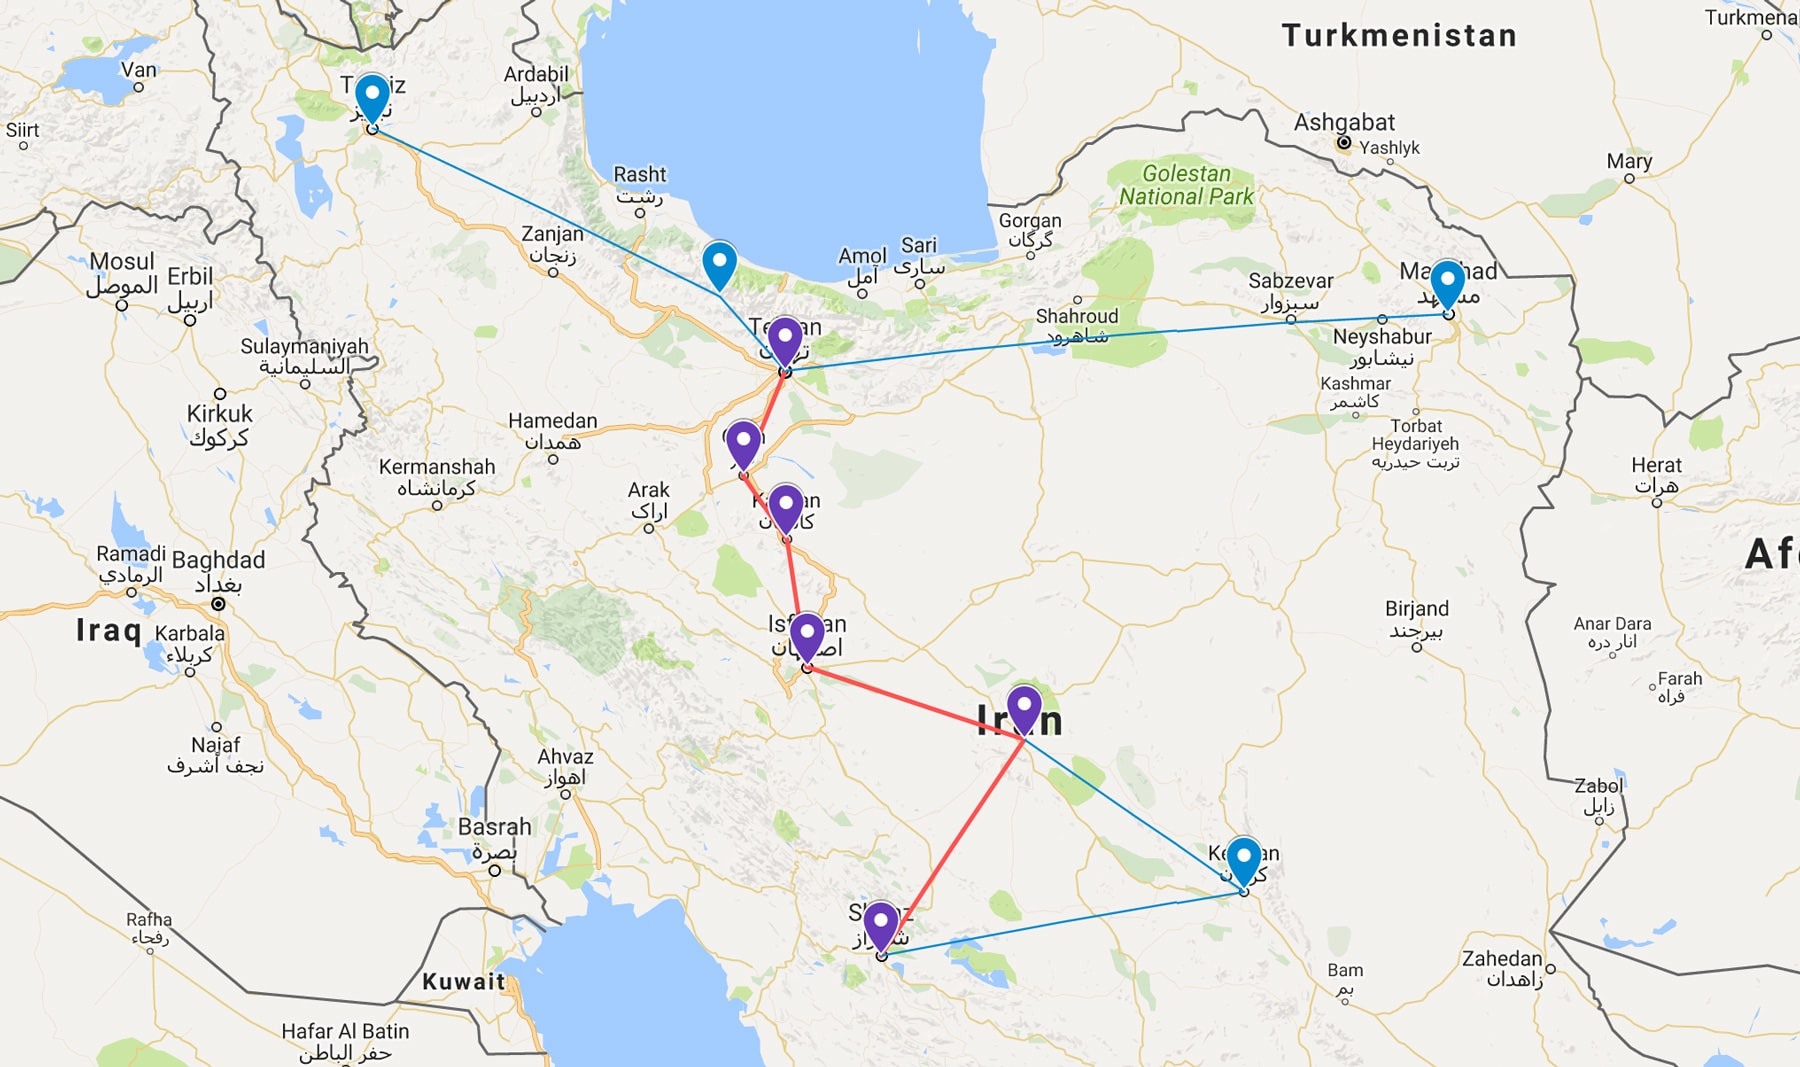 Two week Iran travel itinerary - The Route Map - Lost With Purpose